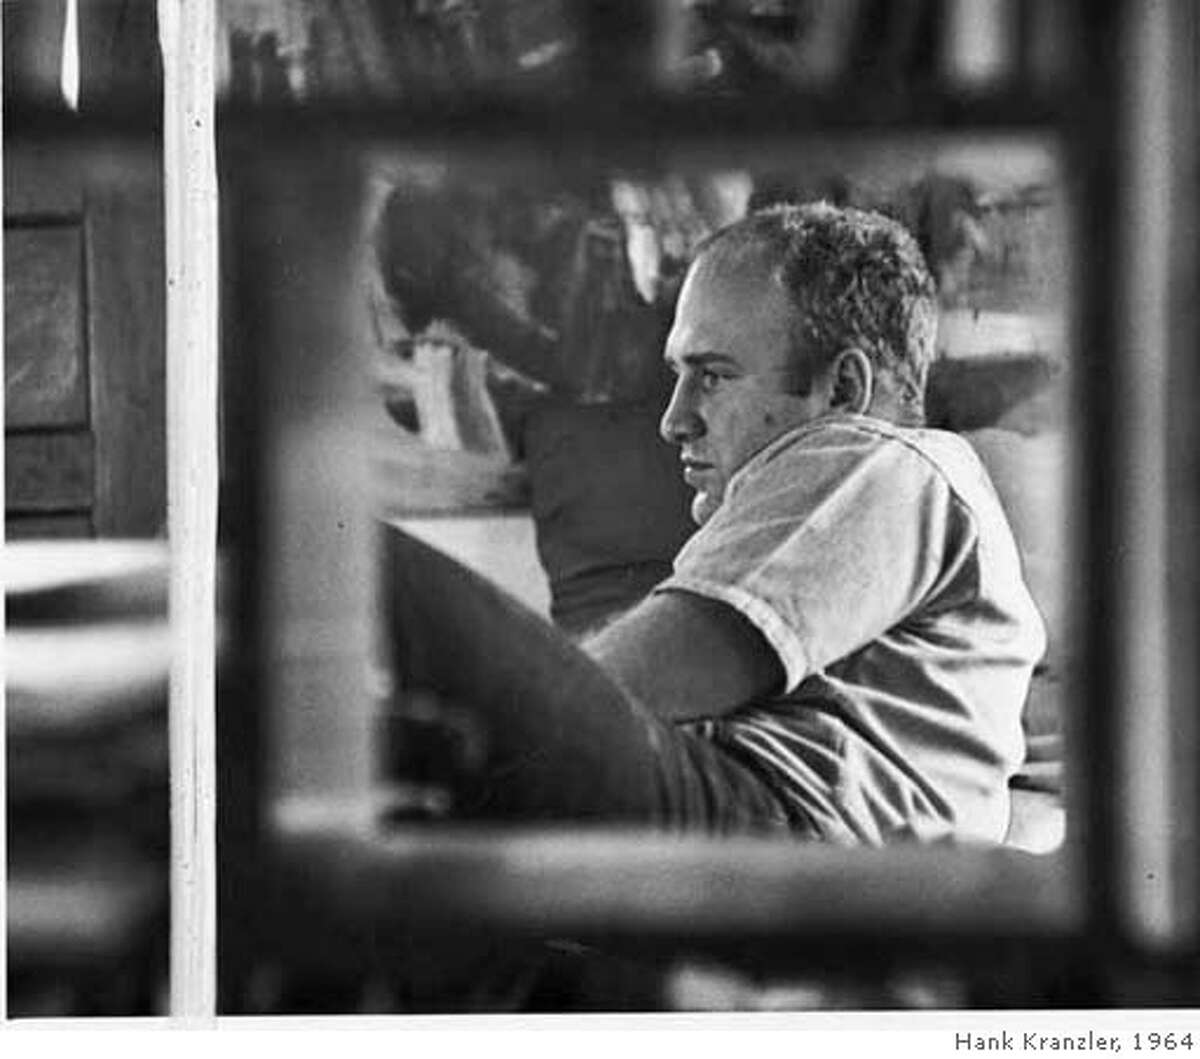 Ken Kesey, 1964, no other information given. Photo Hank Kranzler